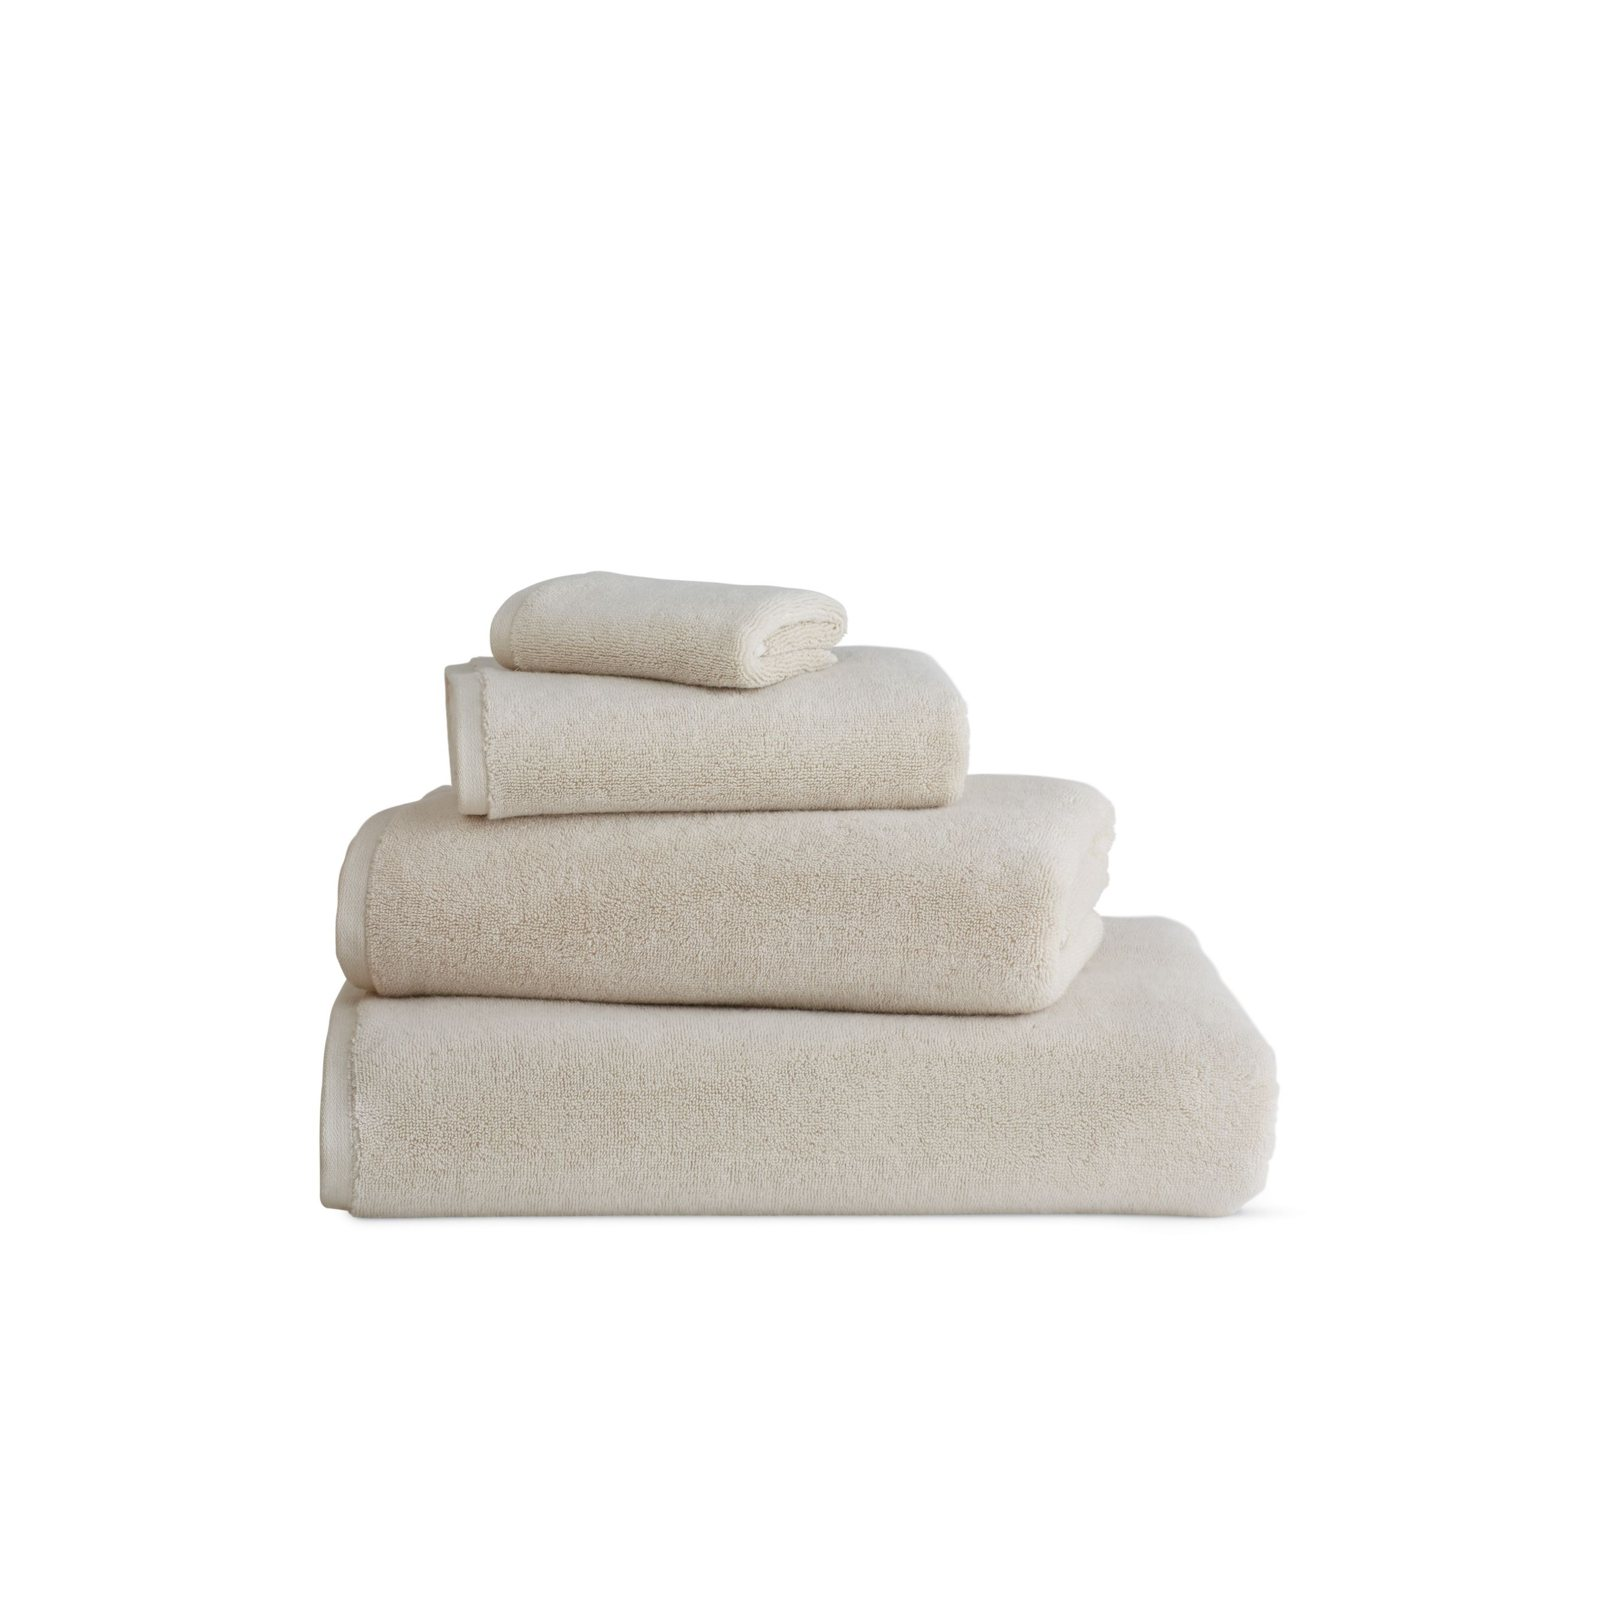 dwr aerocotton towel by design within reach up interiors